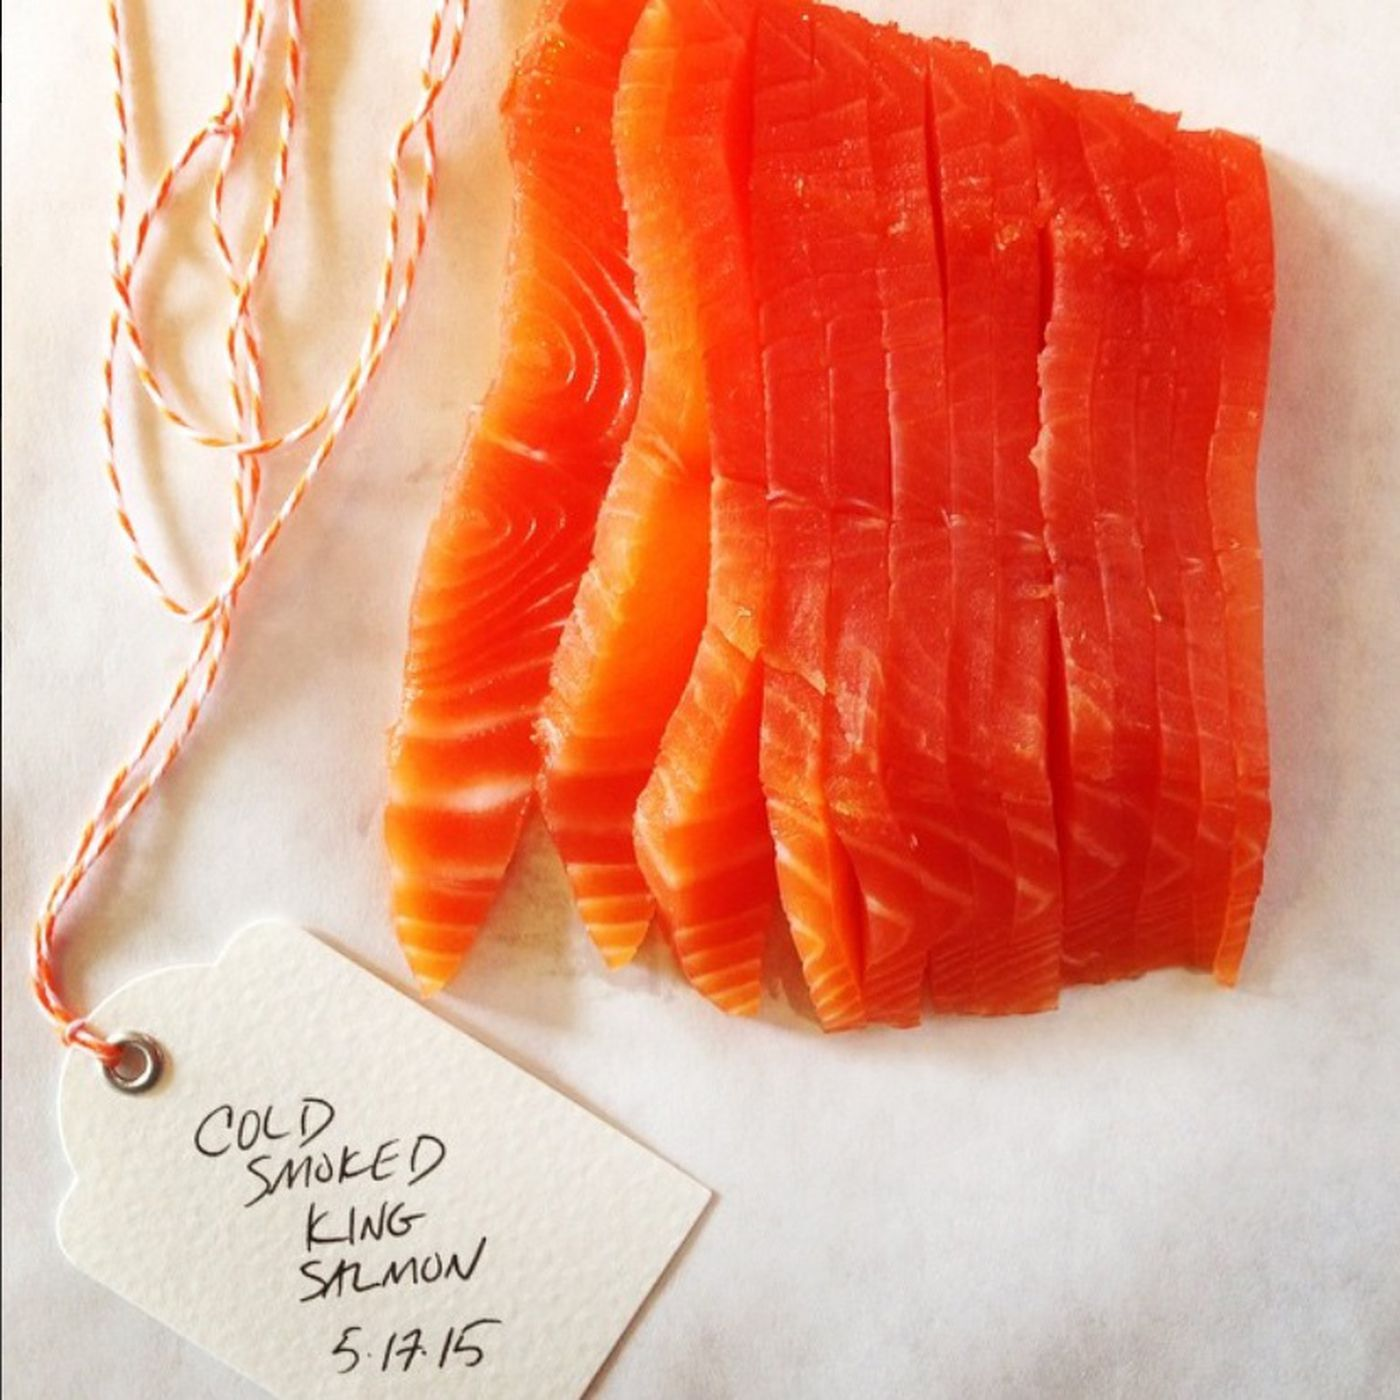 Smoked Fish Shop Coming This Summer to Hillman City - Eater Seattle